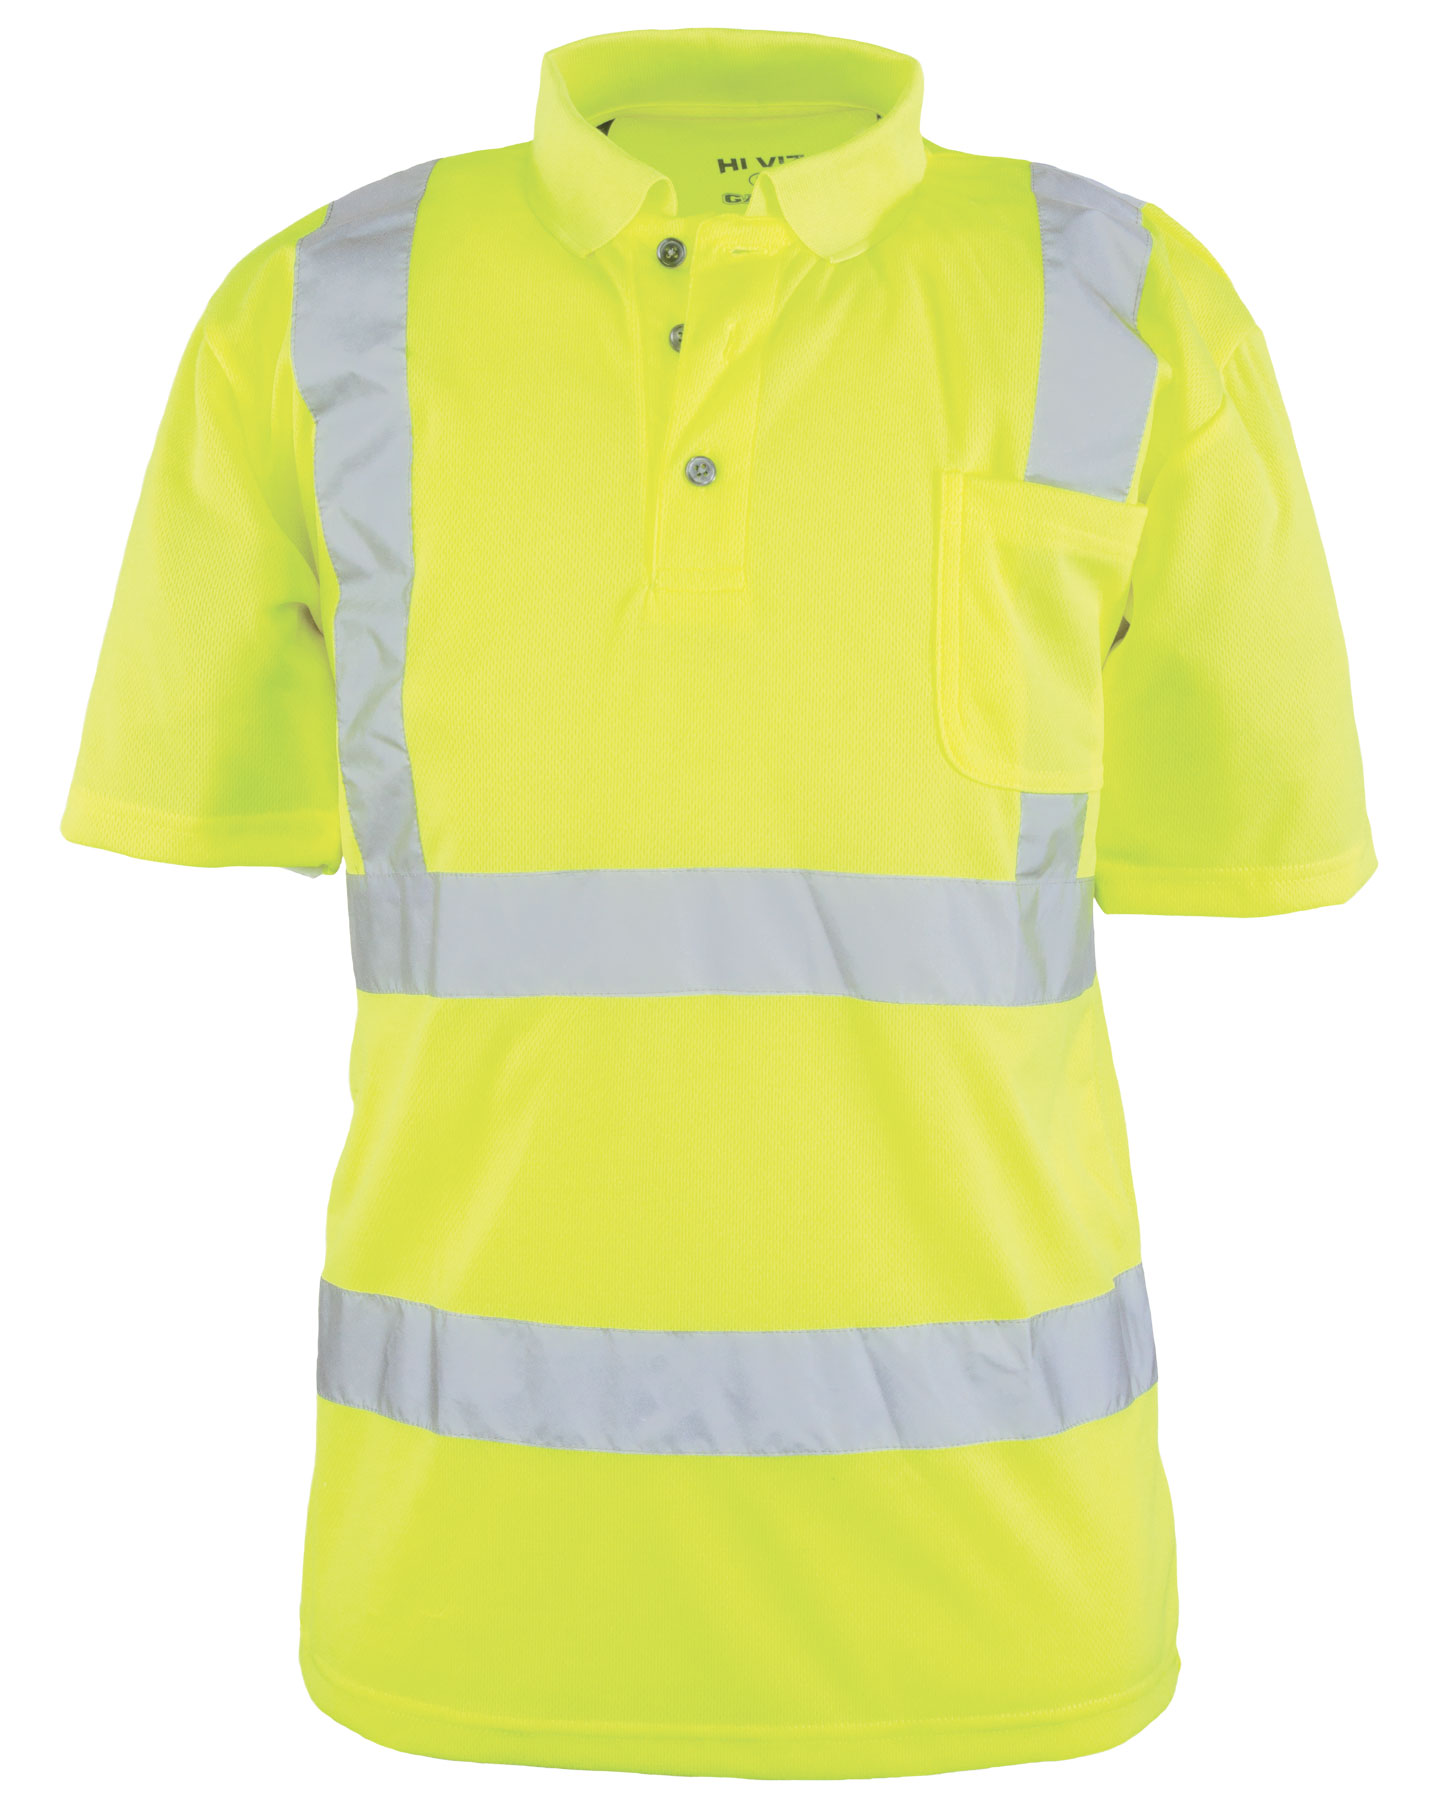 The ANSI/ISEA 107-2015 Class 2  Foreman Polo